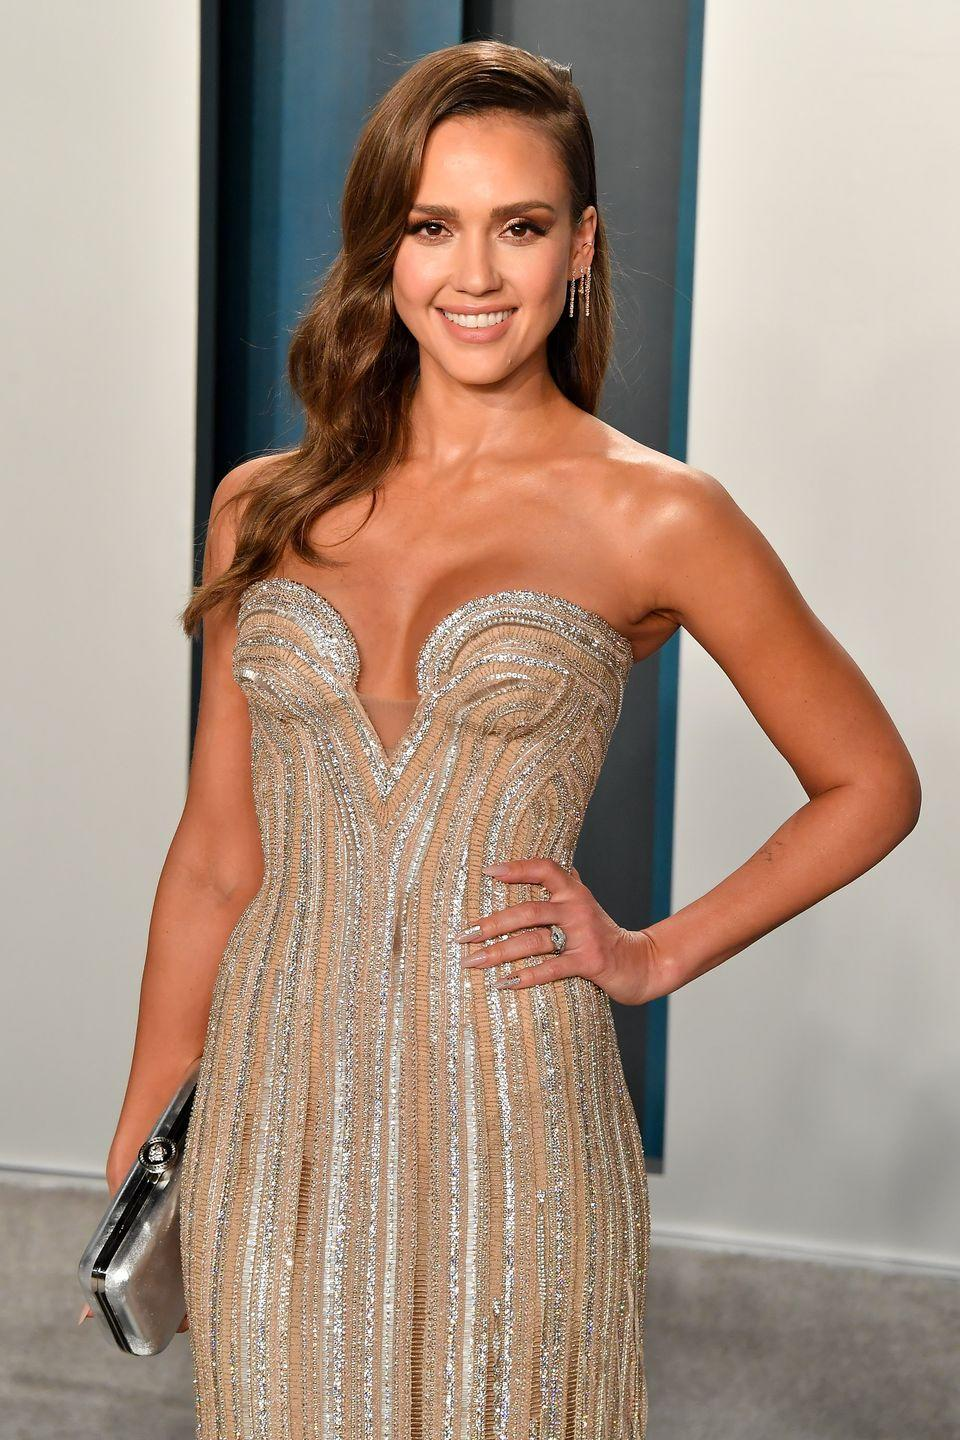 """<p>Staying fit in lockdown, Jessica Alba has been training with fitness coach Aaron Hines, <a href=""""https://www.youtube.com/watch?v=se3hE_aIgmg&ab_channel=JessicaAlba"""" rel=""""nofollow noopener"""" target=""""_blank"""" data-ylk=""""slk:sharing their workouts to her 182k subscribers on YouTube"""" class=""""link rapid-noclick-resp"""">sharing their workouts to her 182k subscribers on YouTube</a>. Featuring reverse lunge hops, mountain climbers and resistance band lower-body moves, it's a sweaty session you can follow along, too. </p>"""